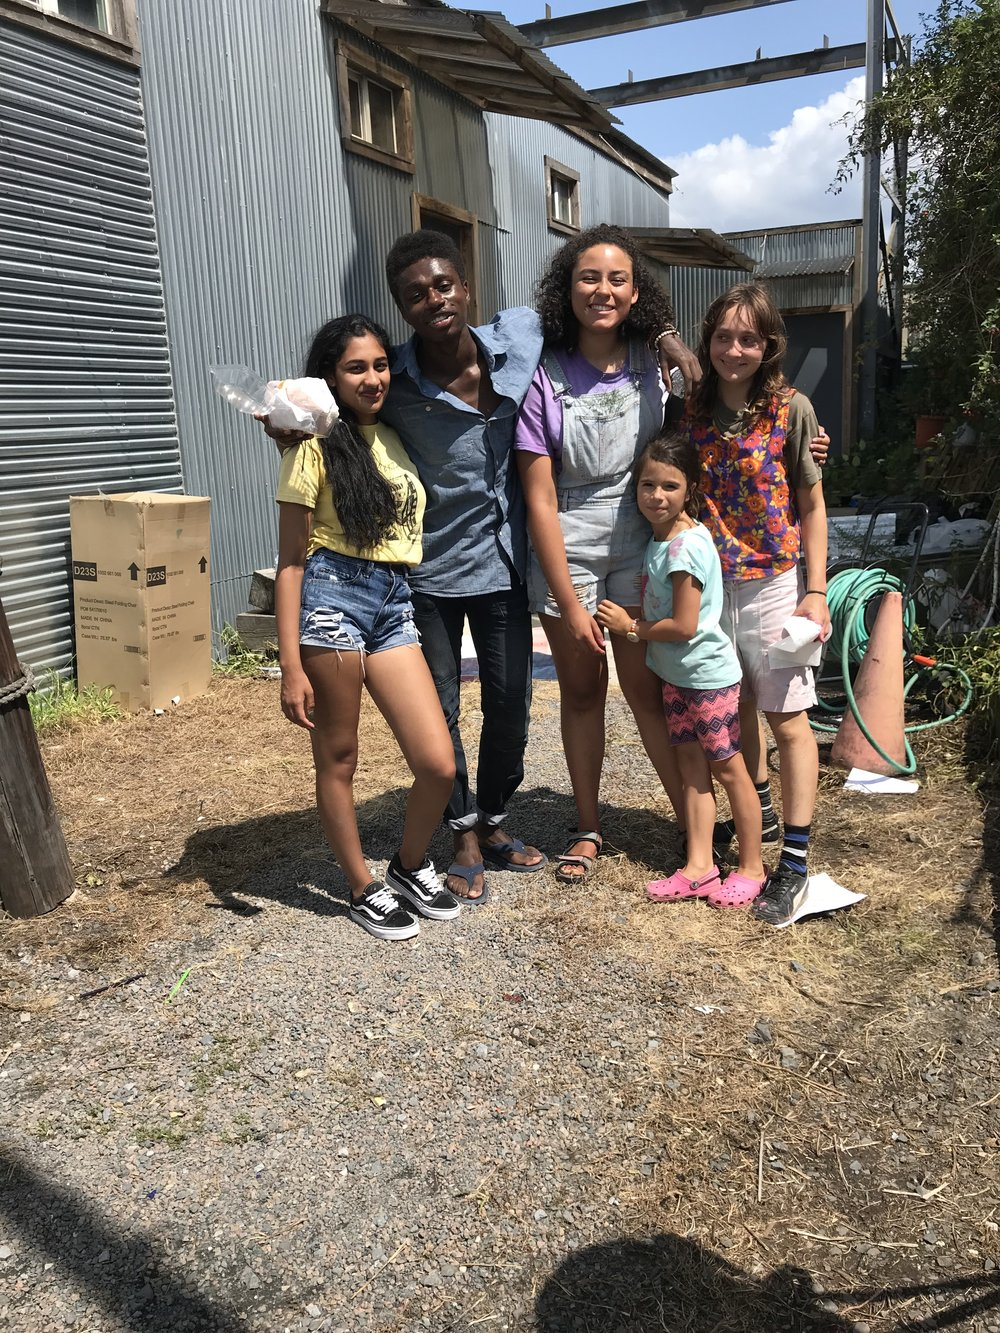 Bianca, Carel, Lilly, Sophie and Gala,  a part of our SEA LEVEL 2018 crew.